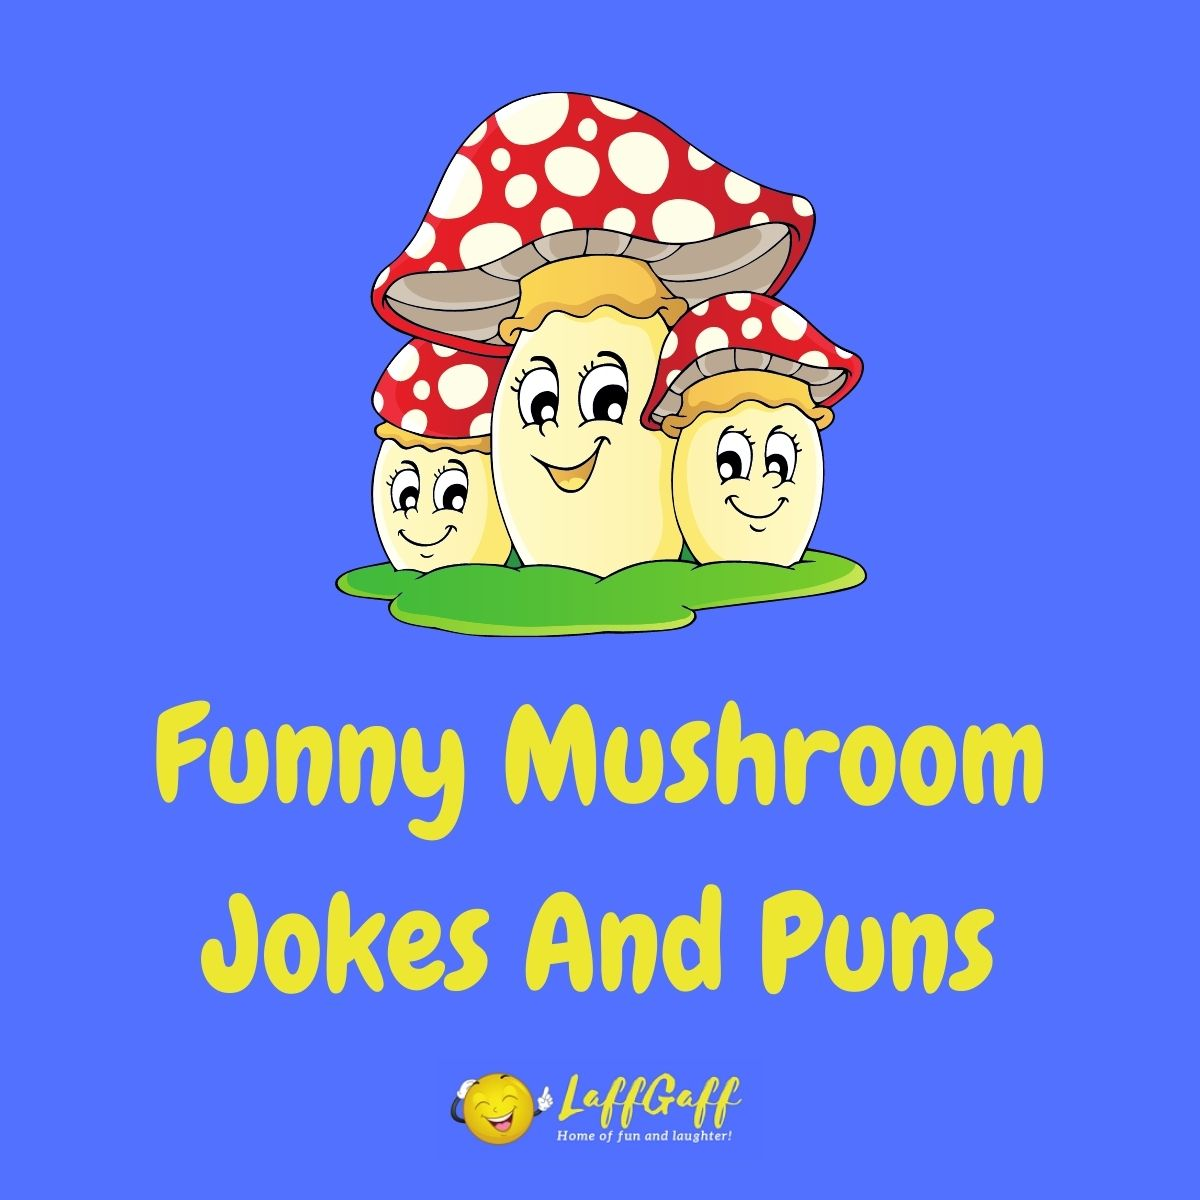 Featured image for a page of funny mushroom jokes and puns.